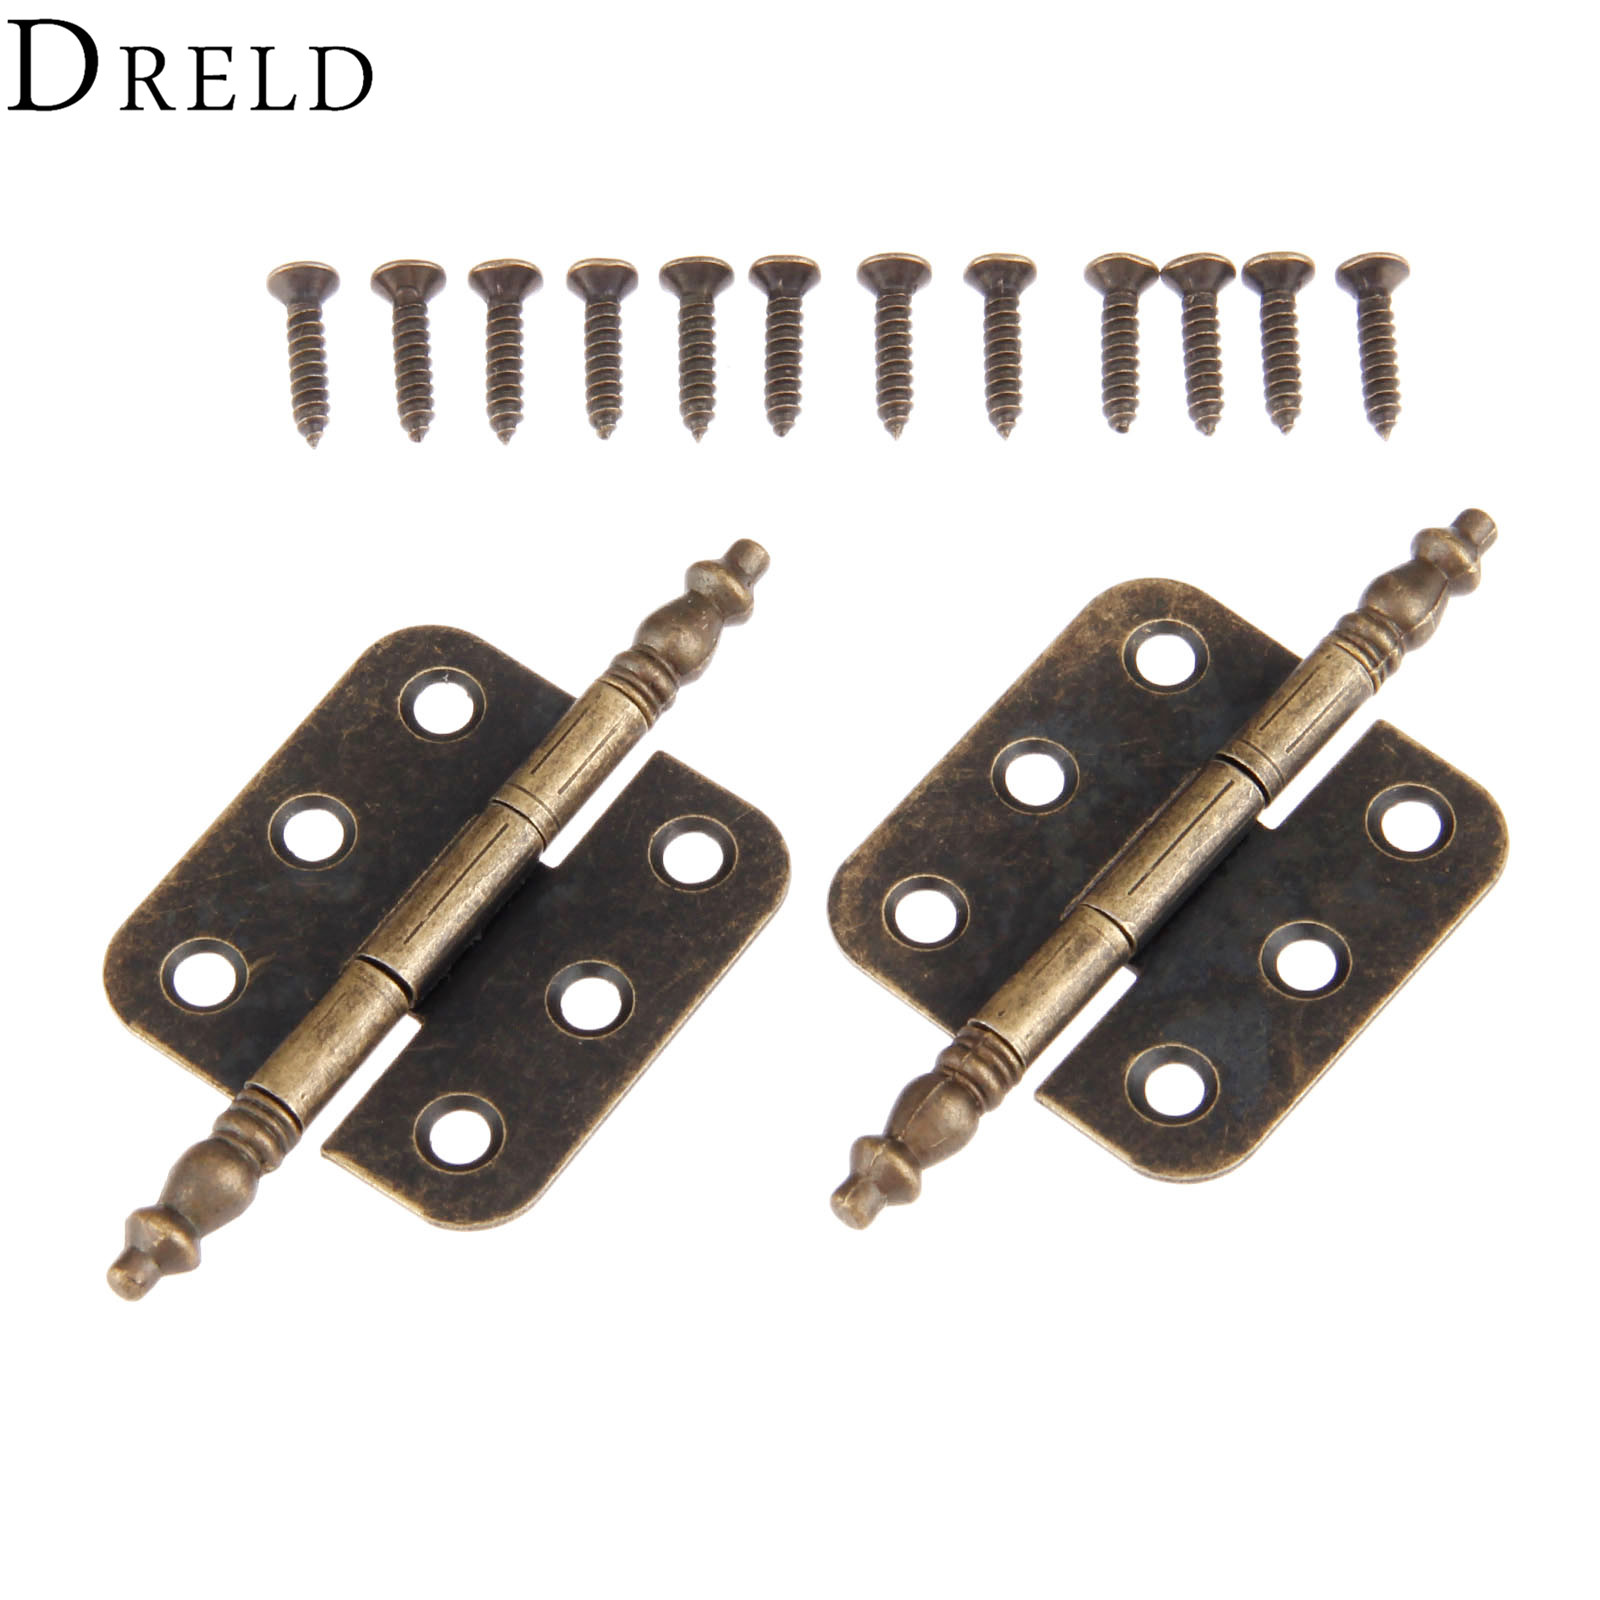 DRELD 2Pcs 70*35mm Antique Bronze Crown Head Hinge 6 Holes Jewelry Gift Box Decorative Hinge for Cabinet Furniture Accessories home metal crown design head cabinet window wardrobe door hinge bronze tone 87 x 39mm 4pcs